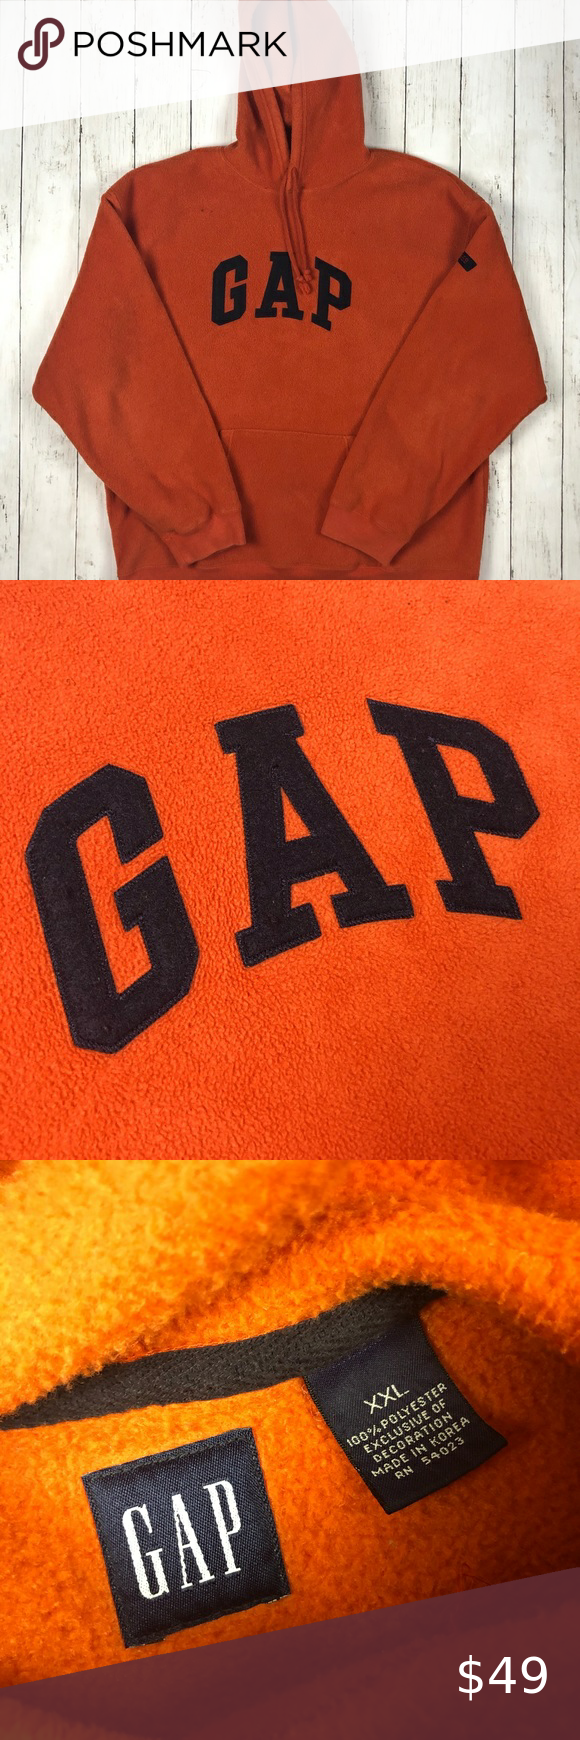 Vintage 90s Gap Spell Out Orange Hoodie Kanye West 100 Authentic Size Xxl Condition No Rips Or Tears No Stains N In 2020 Orange Hoodie Sweatshirt Shirt Kanye West